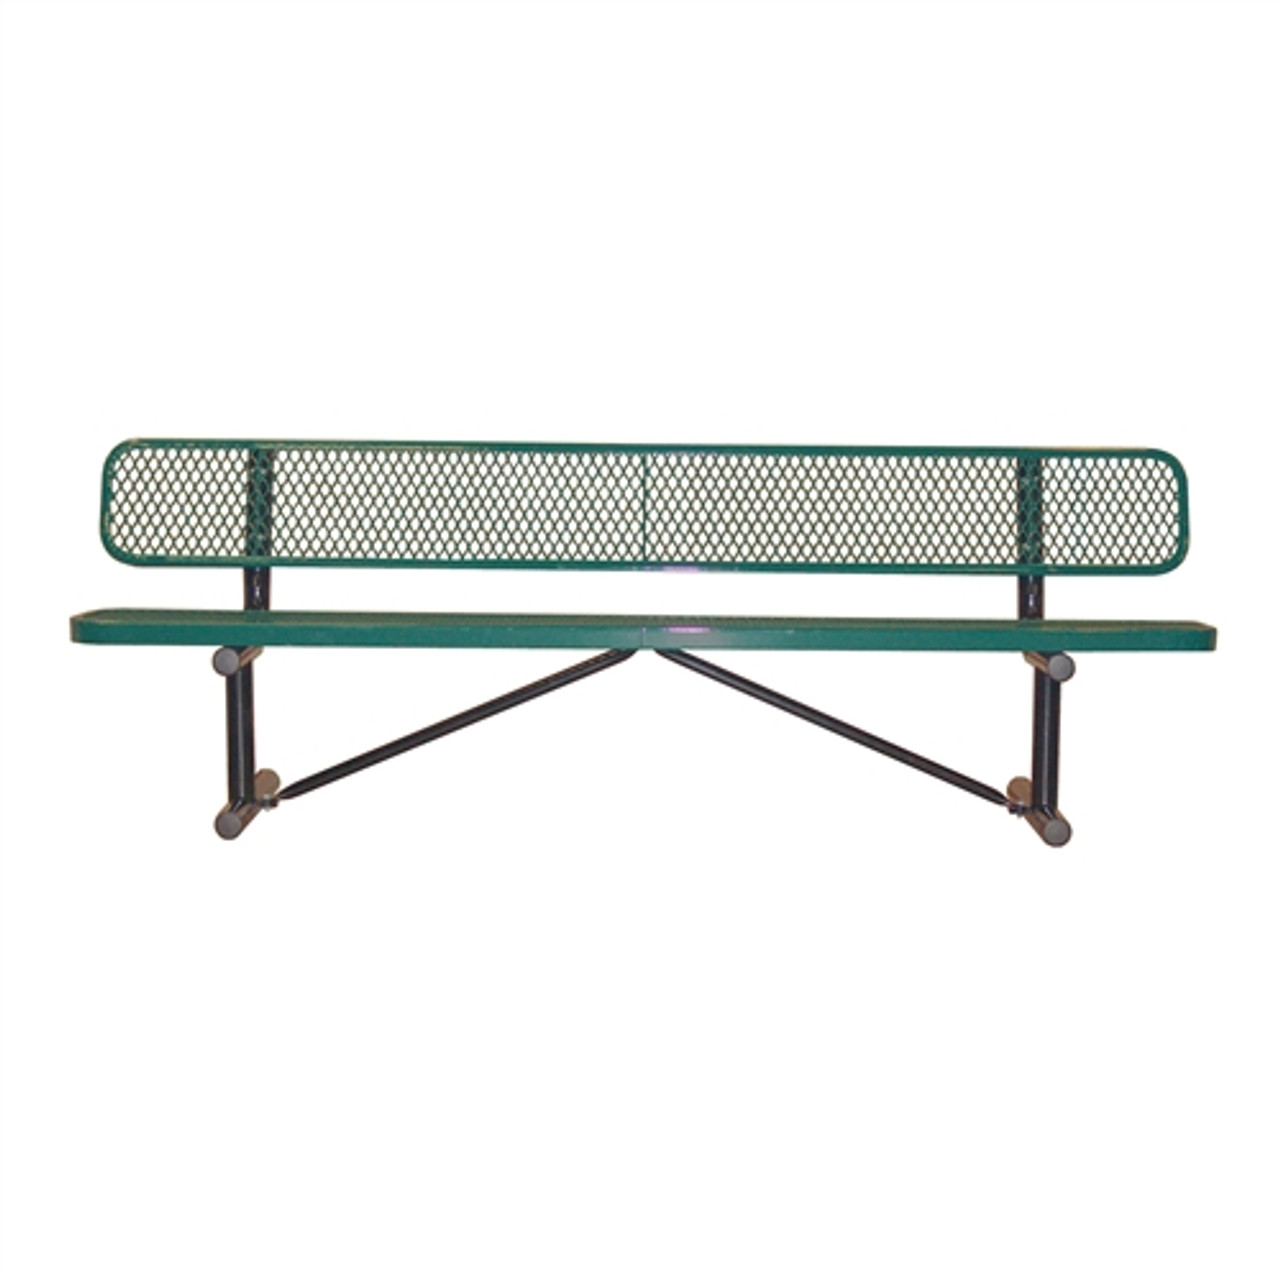 8' Expanded Metal Park Bench with Back